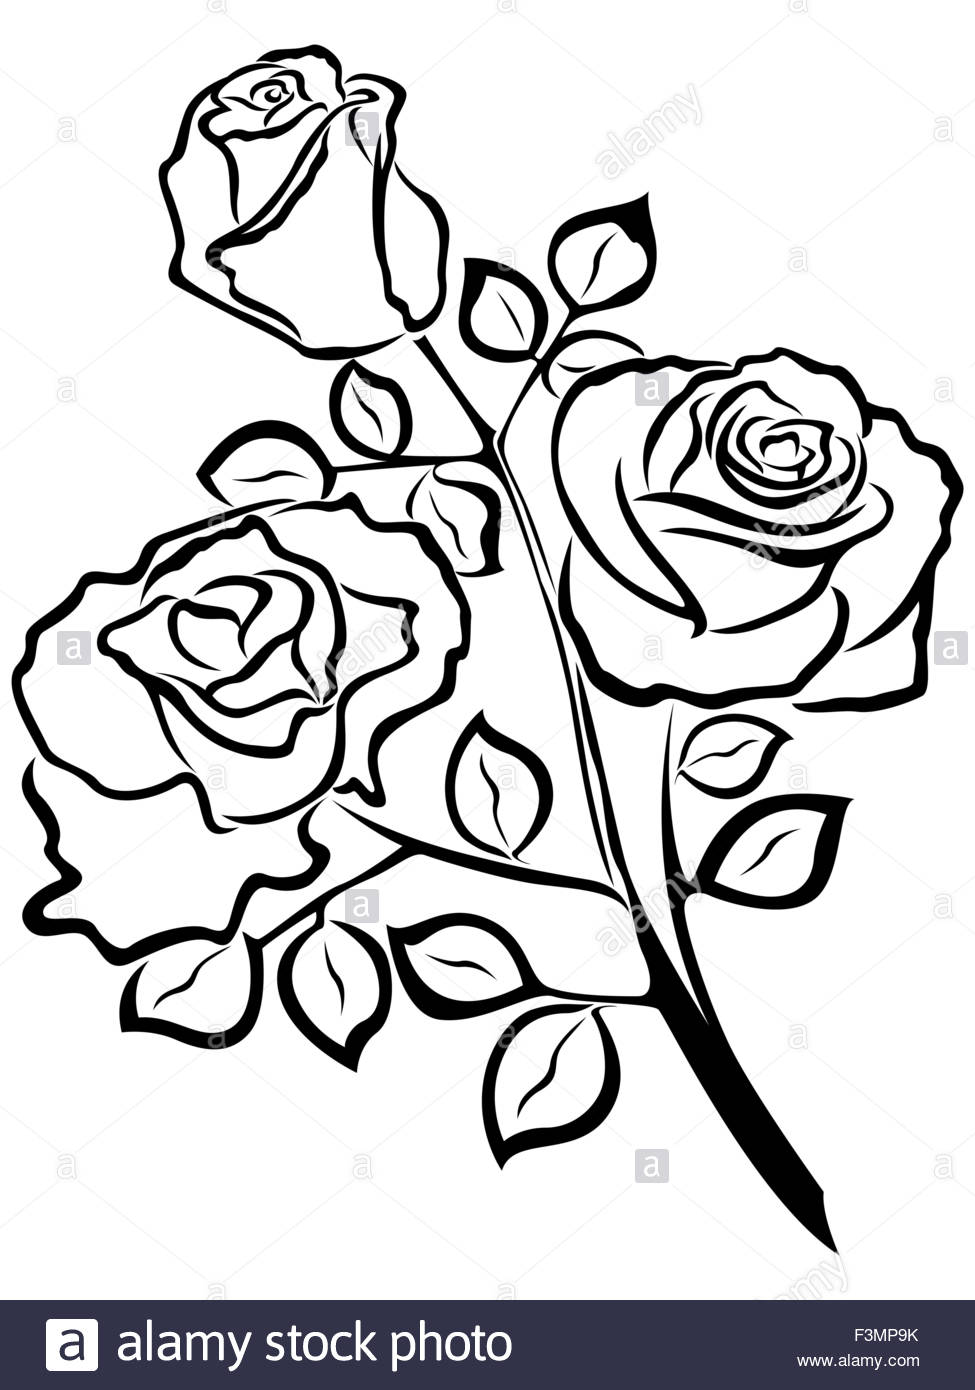 975x1390 Black Outline Of Rose Flowers Isolated On A White Background